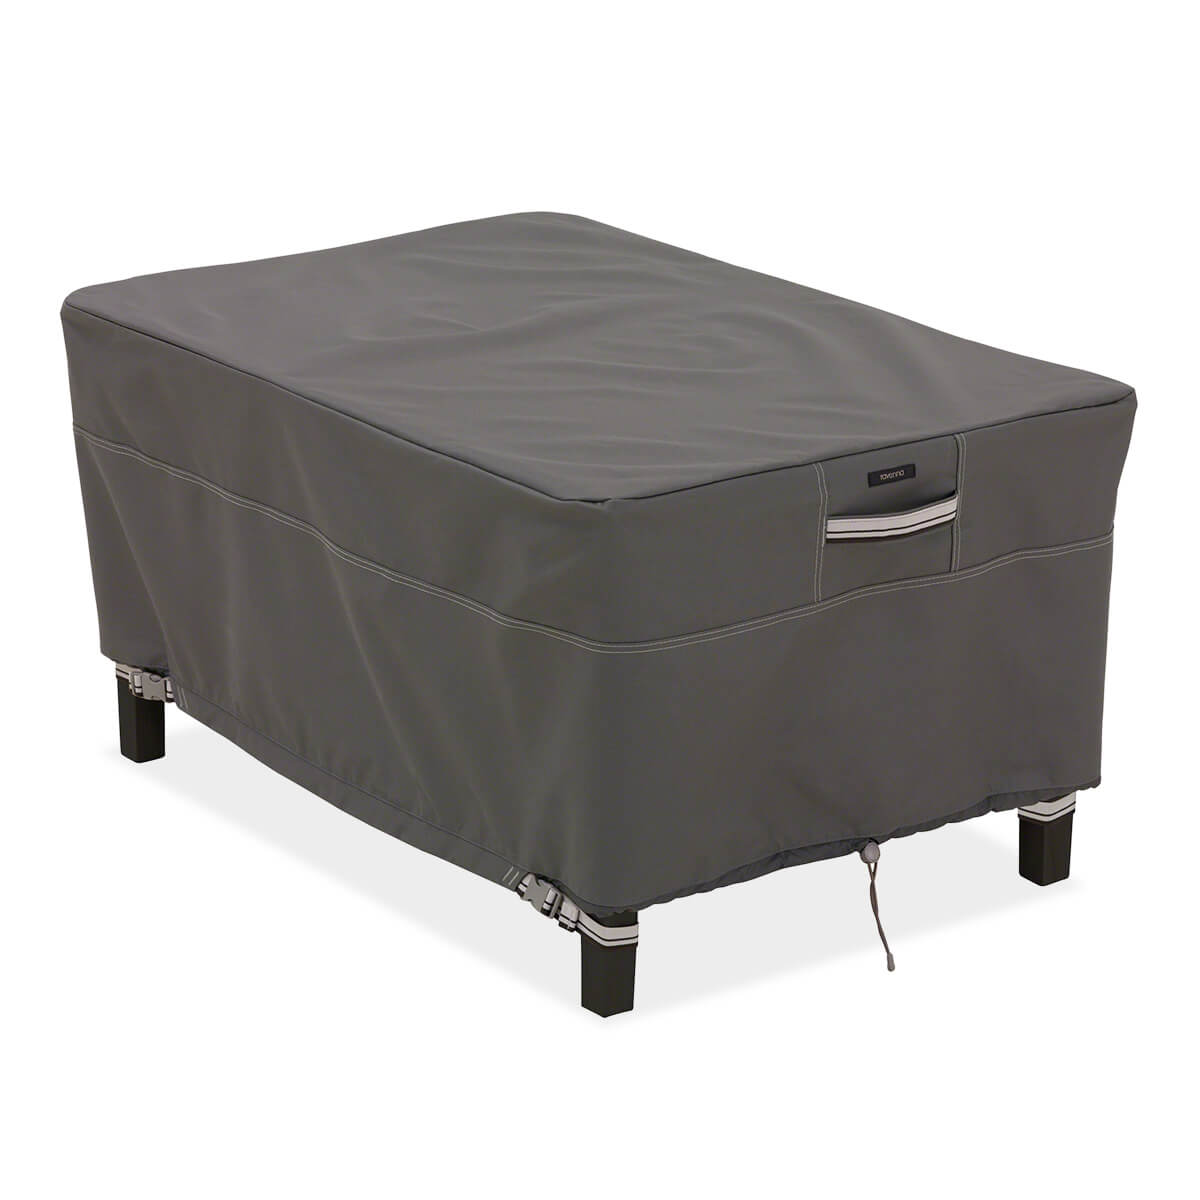 Best Foosball Table Cover Reviews in 2019